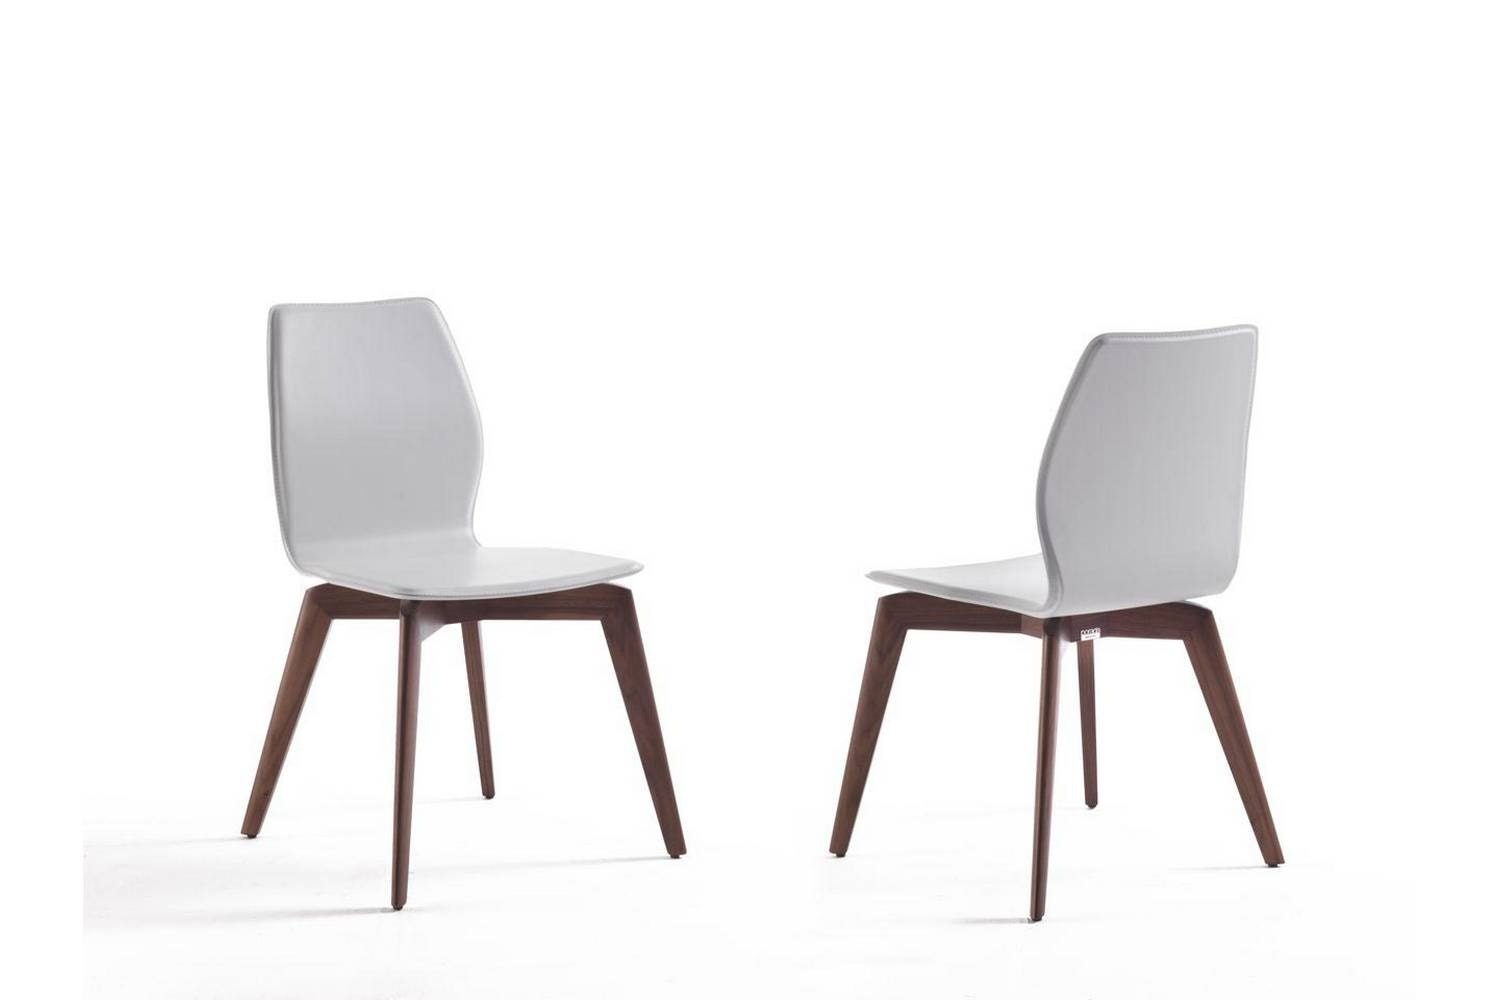 Tilde Chair by A. Mandelli - M. Franzanti for Porada